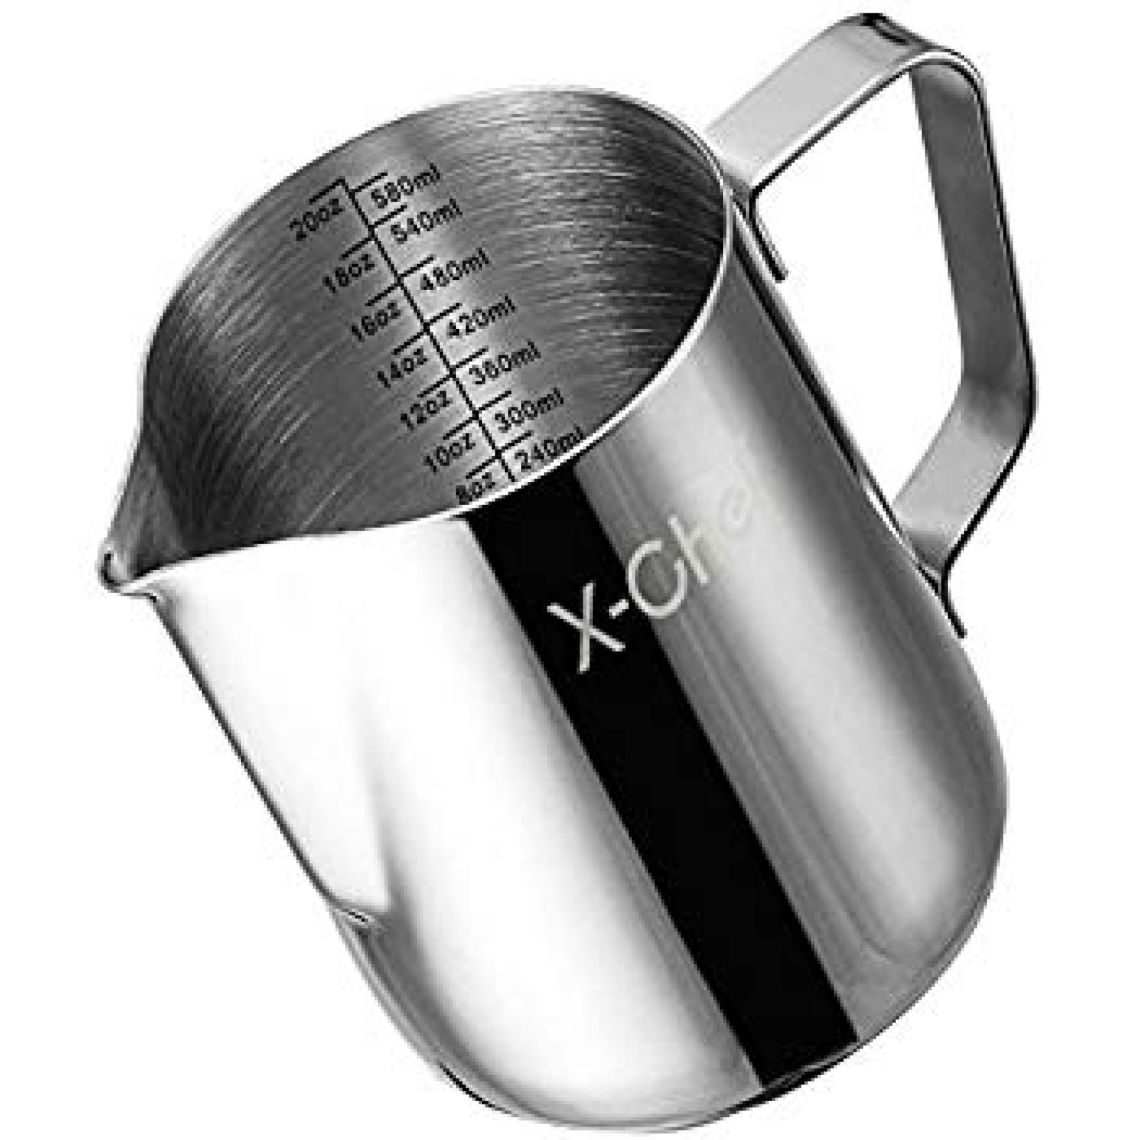 Amazon.com: Milk Pitcher, Stainless Steel Frothing Pitcher, Koncle Frothing Milk with Measurement Markings for Latte Art, Cappuchinos, Expresso, Cream, Water, Juices, Smoothies, Pro Barista & Home Use (28oz): Kitchen & Dining